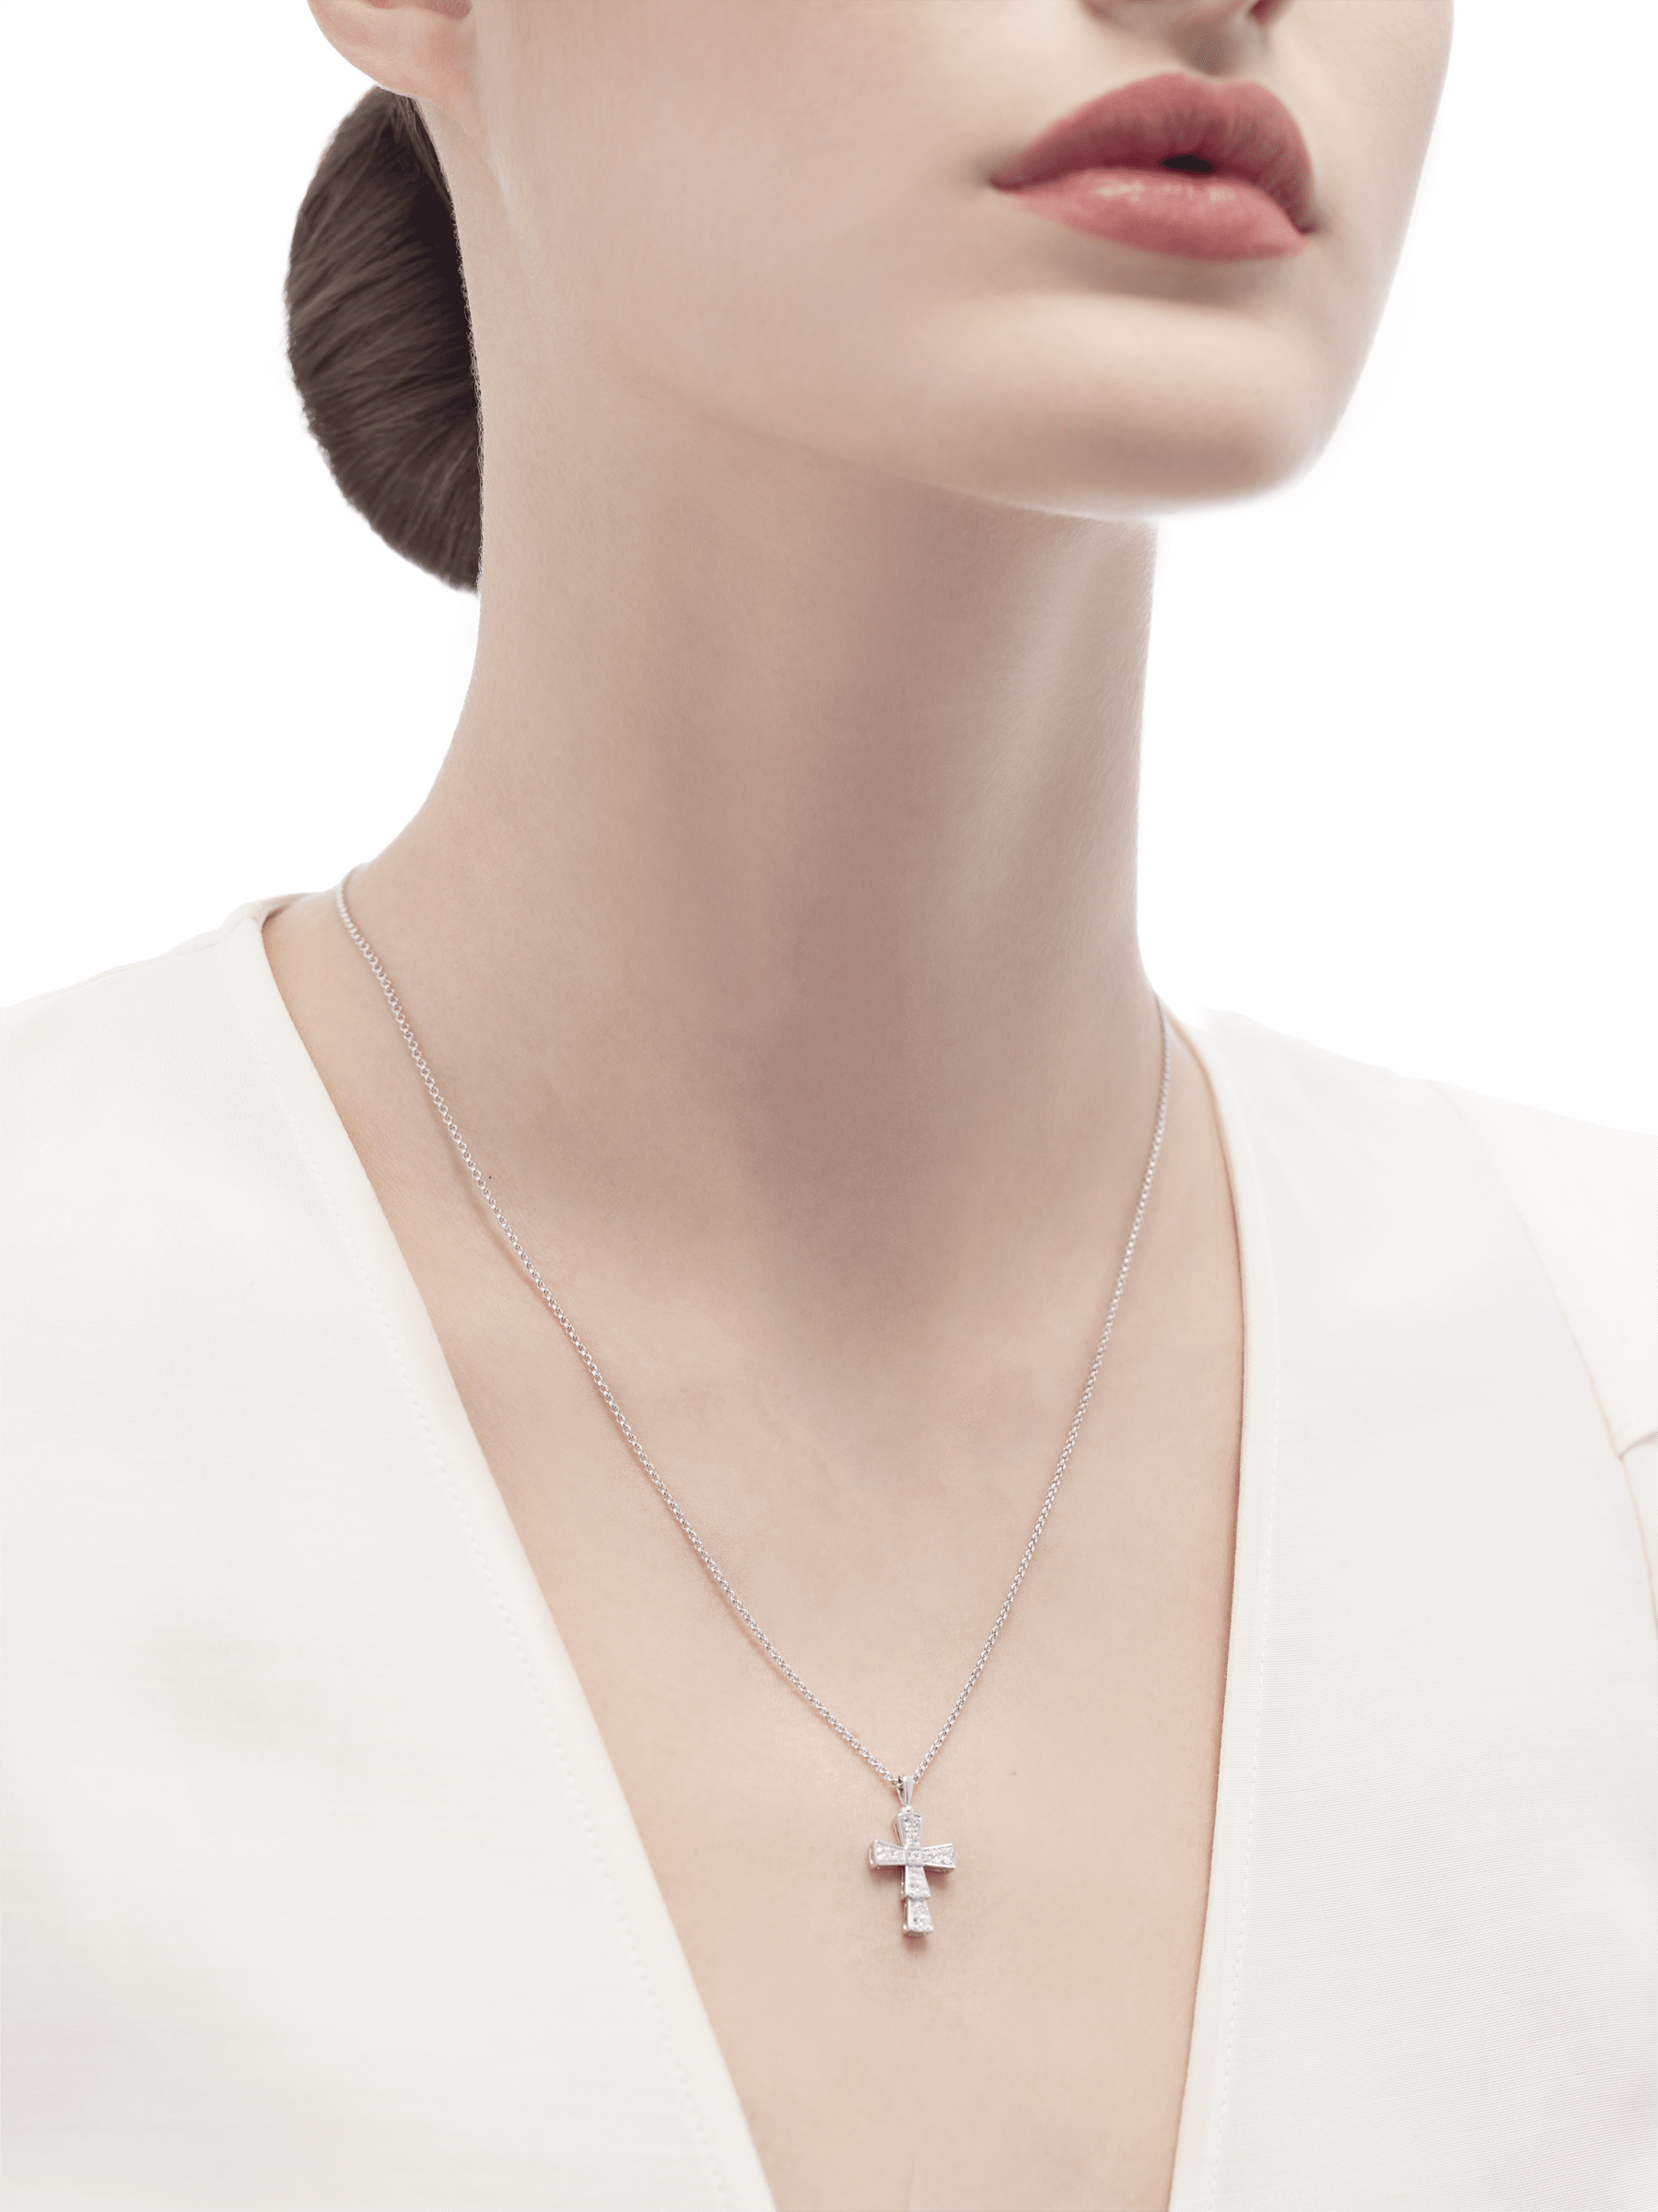 Croce pendant in 18 kt white gold and pavé diamonds (0.32 ct) 354038 image 2